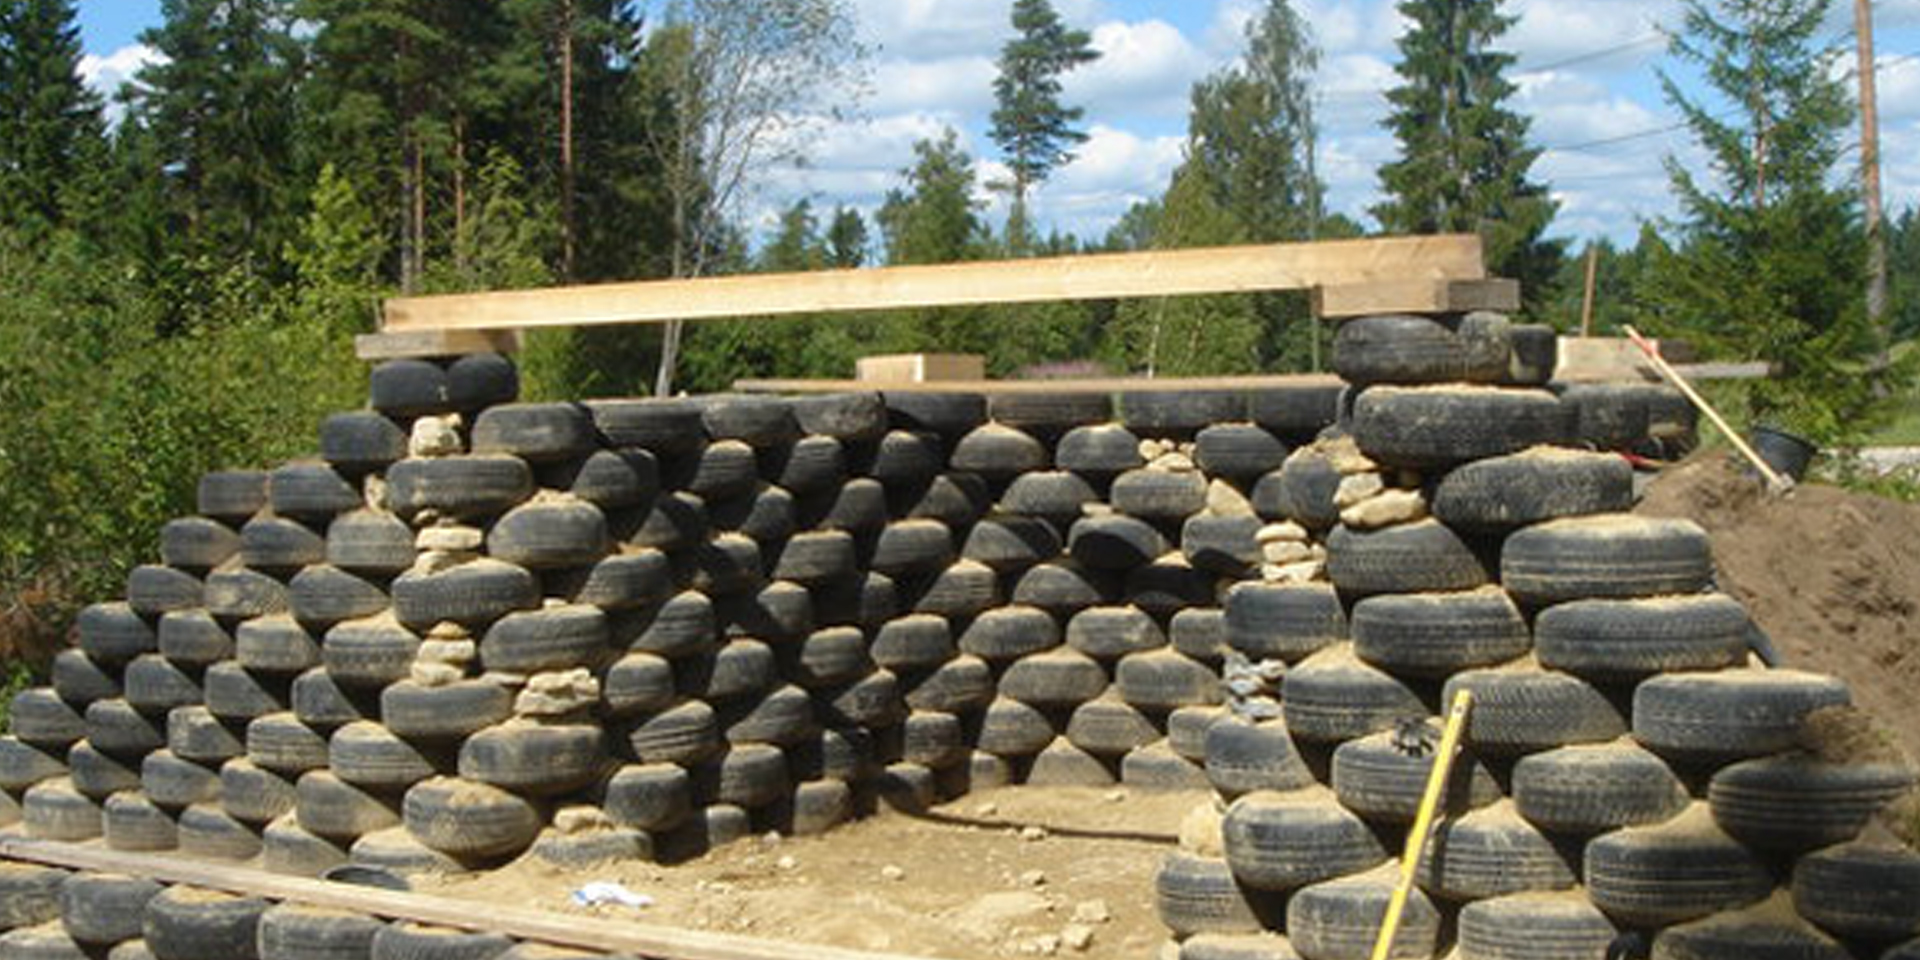 Earthbuilds-Estonia-Earthship-Hero-02